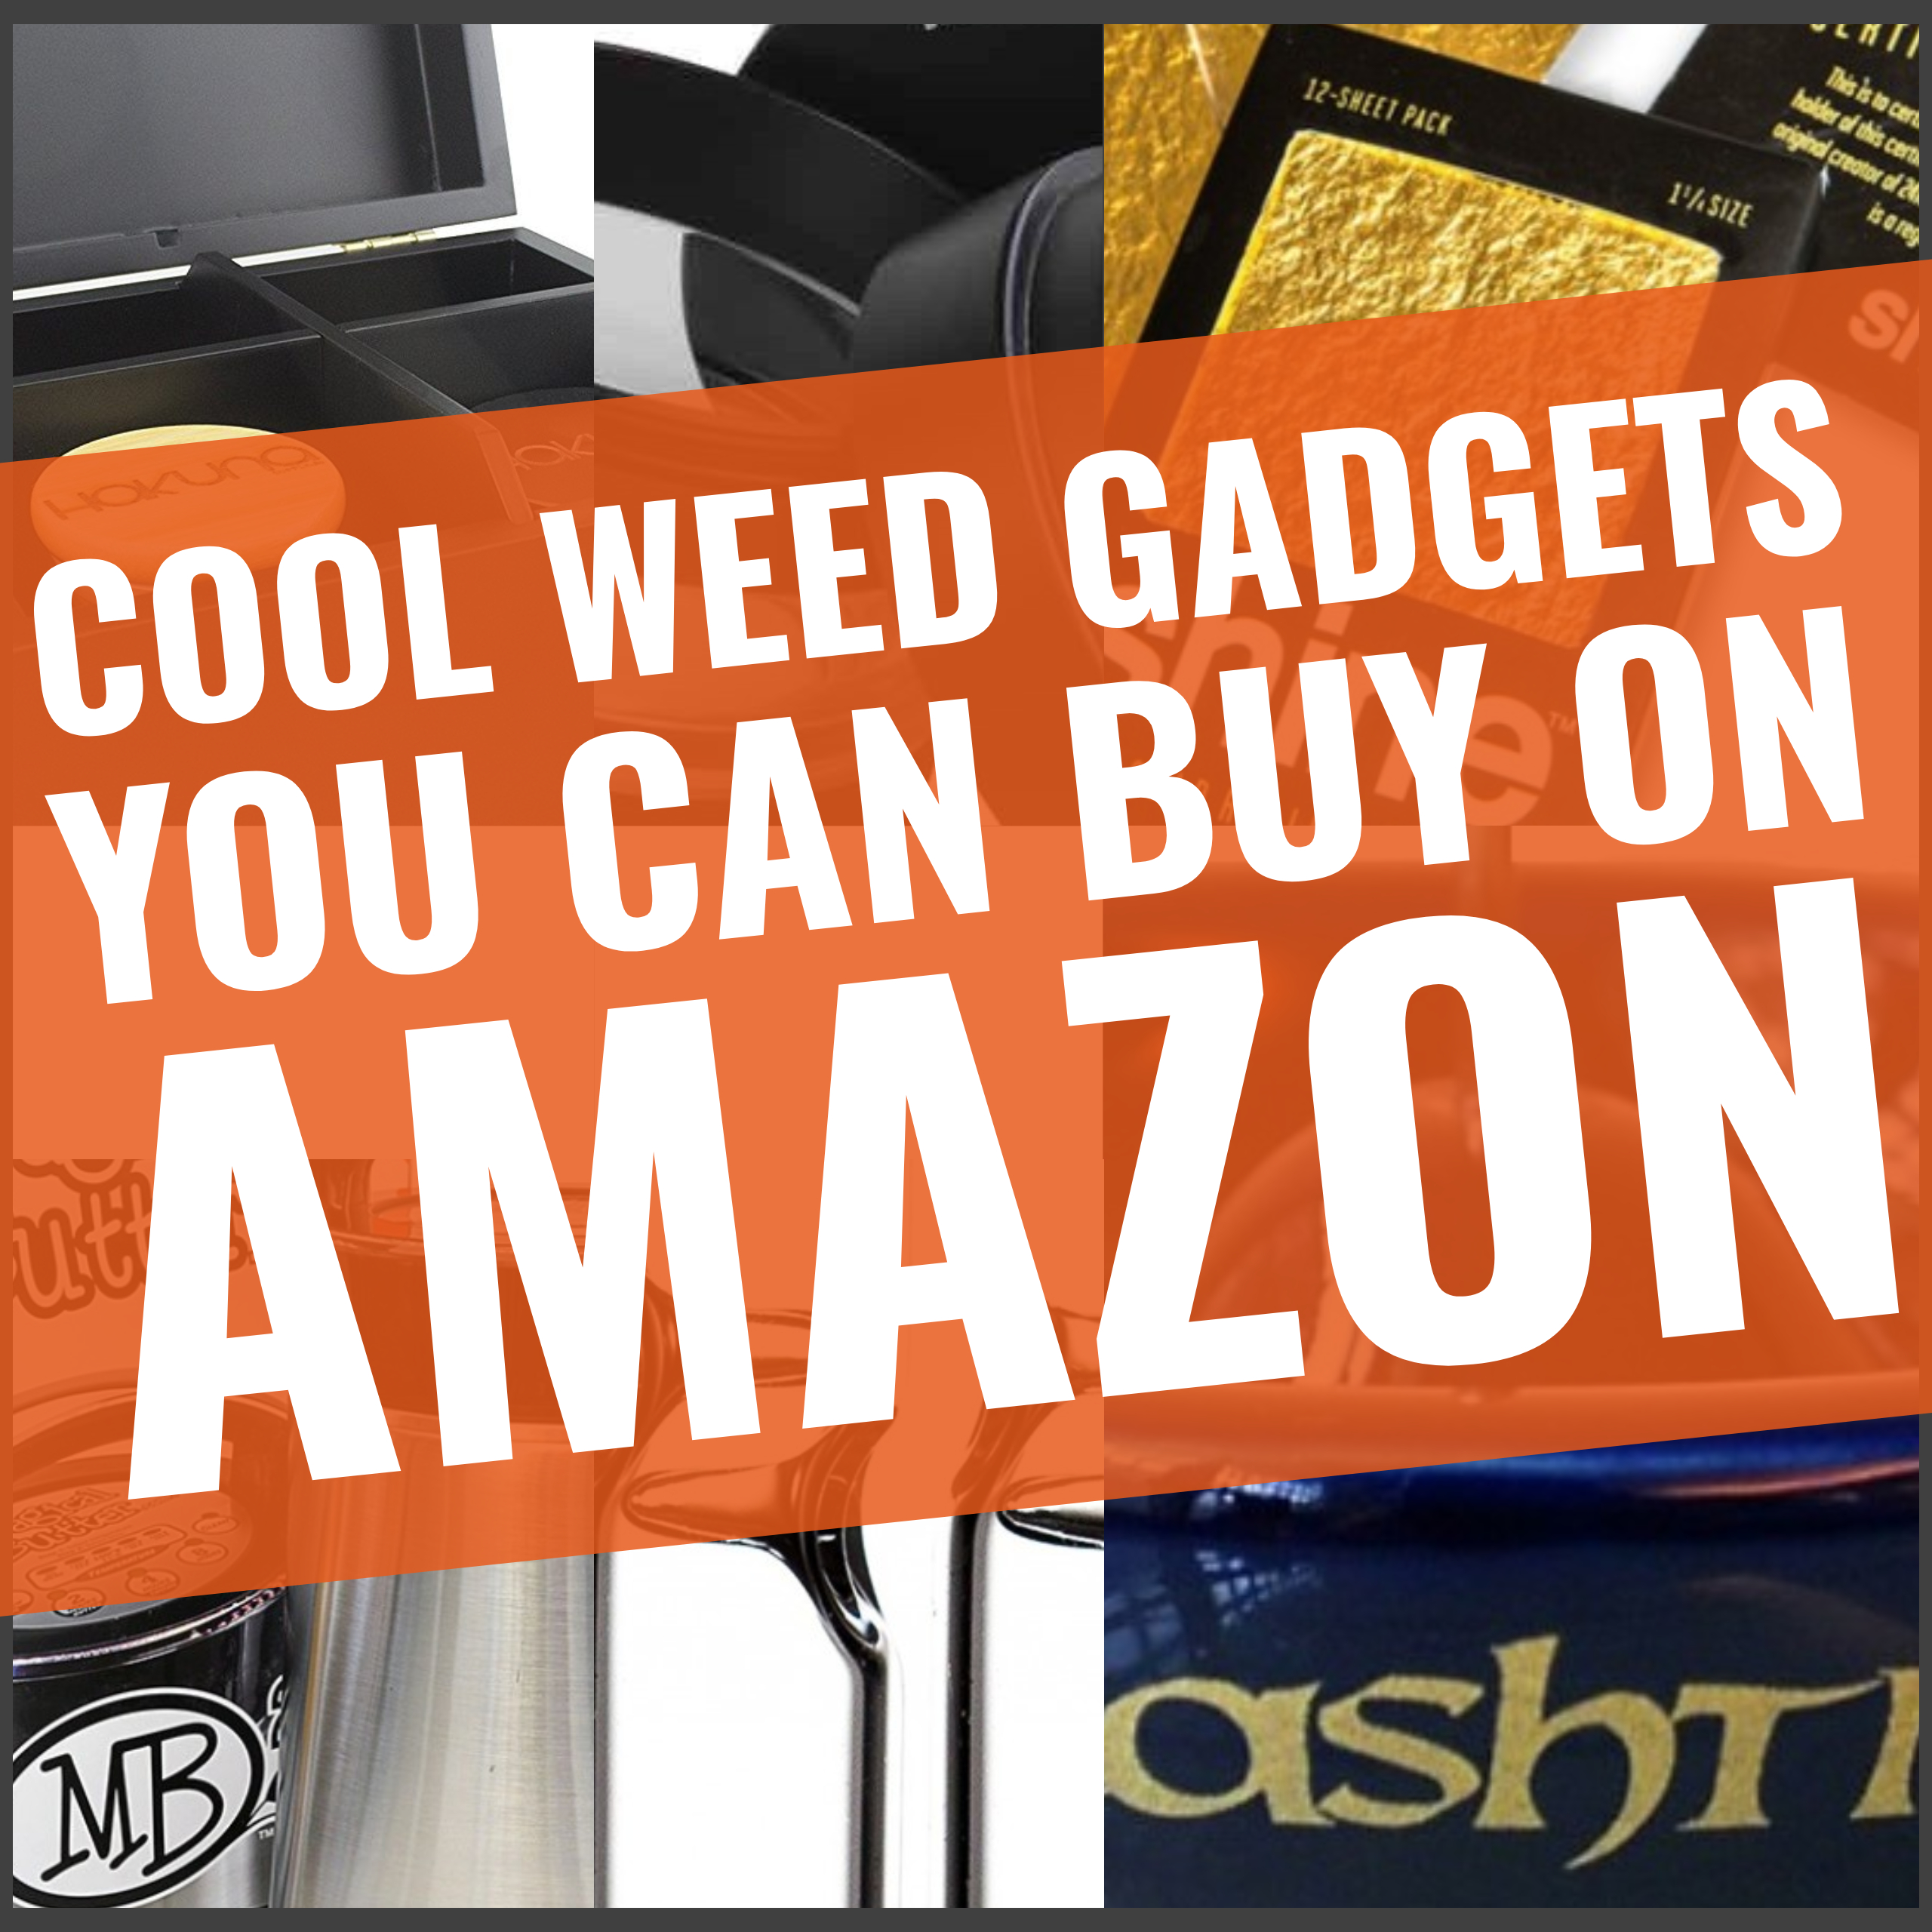 Buy: COOL WEED GADGETS YOU CAN BUY ON AMAZON // WEEDGADGETS